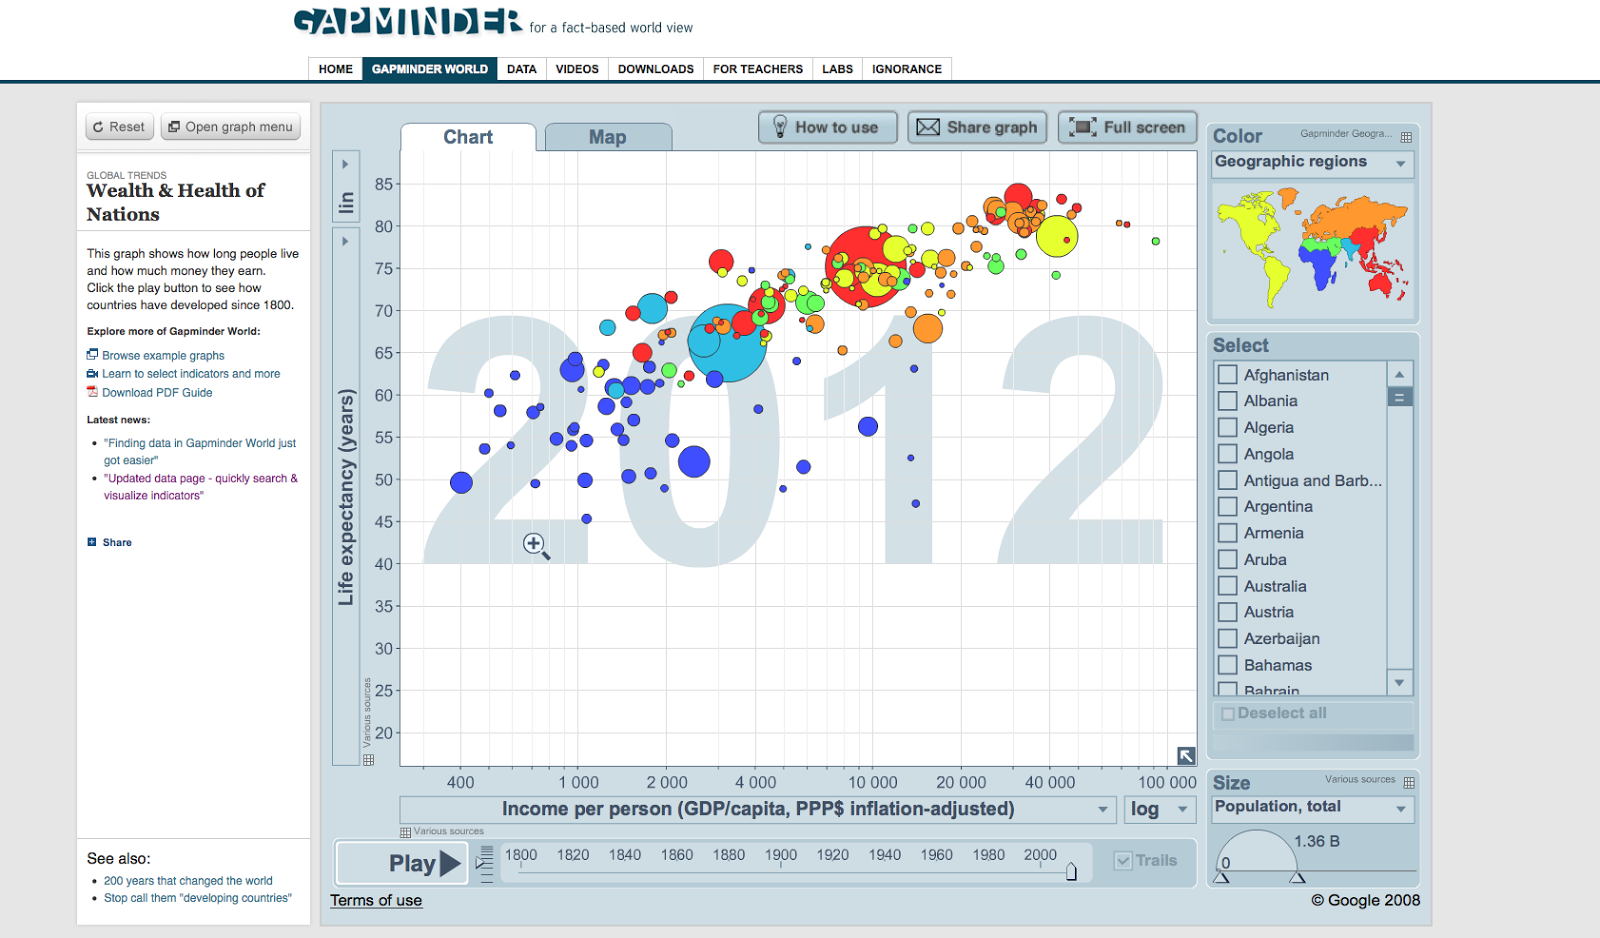 http://www.gapminder.org/world/#$majorMode=chart$is;shi=t;ly=2003;lb=f;il=t;fs=11;al=30;stl=t;st=t;nsl=t;se=t$wst;tts=C$ts;sp=5.59290322580644;ti=2012$zpv;v=0$inc_x;mmid=XCOORDS;iid=phAwcNAVuyj1jiMAkmq1iMg;by=ind$inc_y;mmid=YCOORDS;iid=phAwcNAVuyj2tPLxKvvnNPA;by=ind$inc_s;uniValue=8.21;iid=phAwcNAVuyj0XOoBL_n5tAQ;by=ind$inc_c;uniValue=255;gid=CATID0;by=grp$map_x;scale=log;dataMin=283;dataMax=110808$map_y;scale=lin;dataMin=18;dataMax=87$map_s;sma=49;smi=2.65$cd;bd=0$inds=;example=75